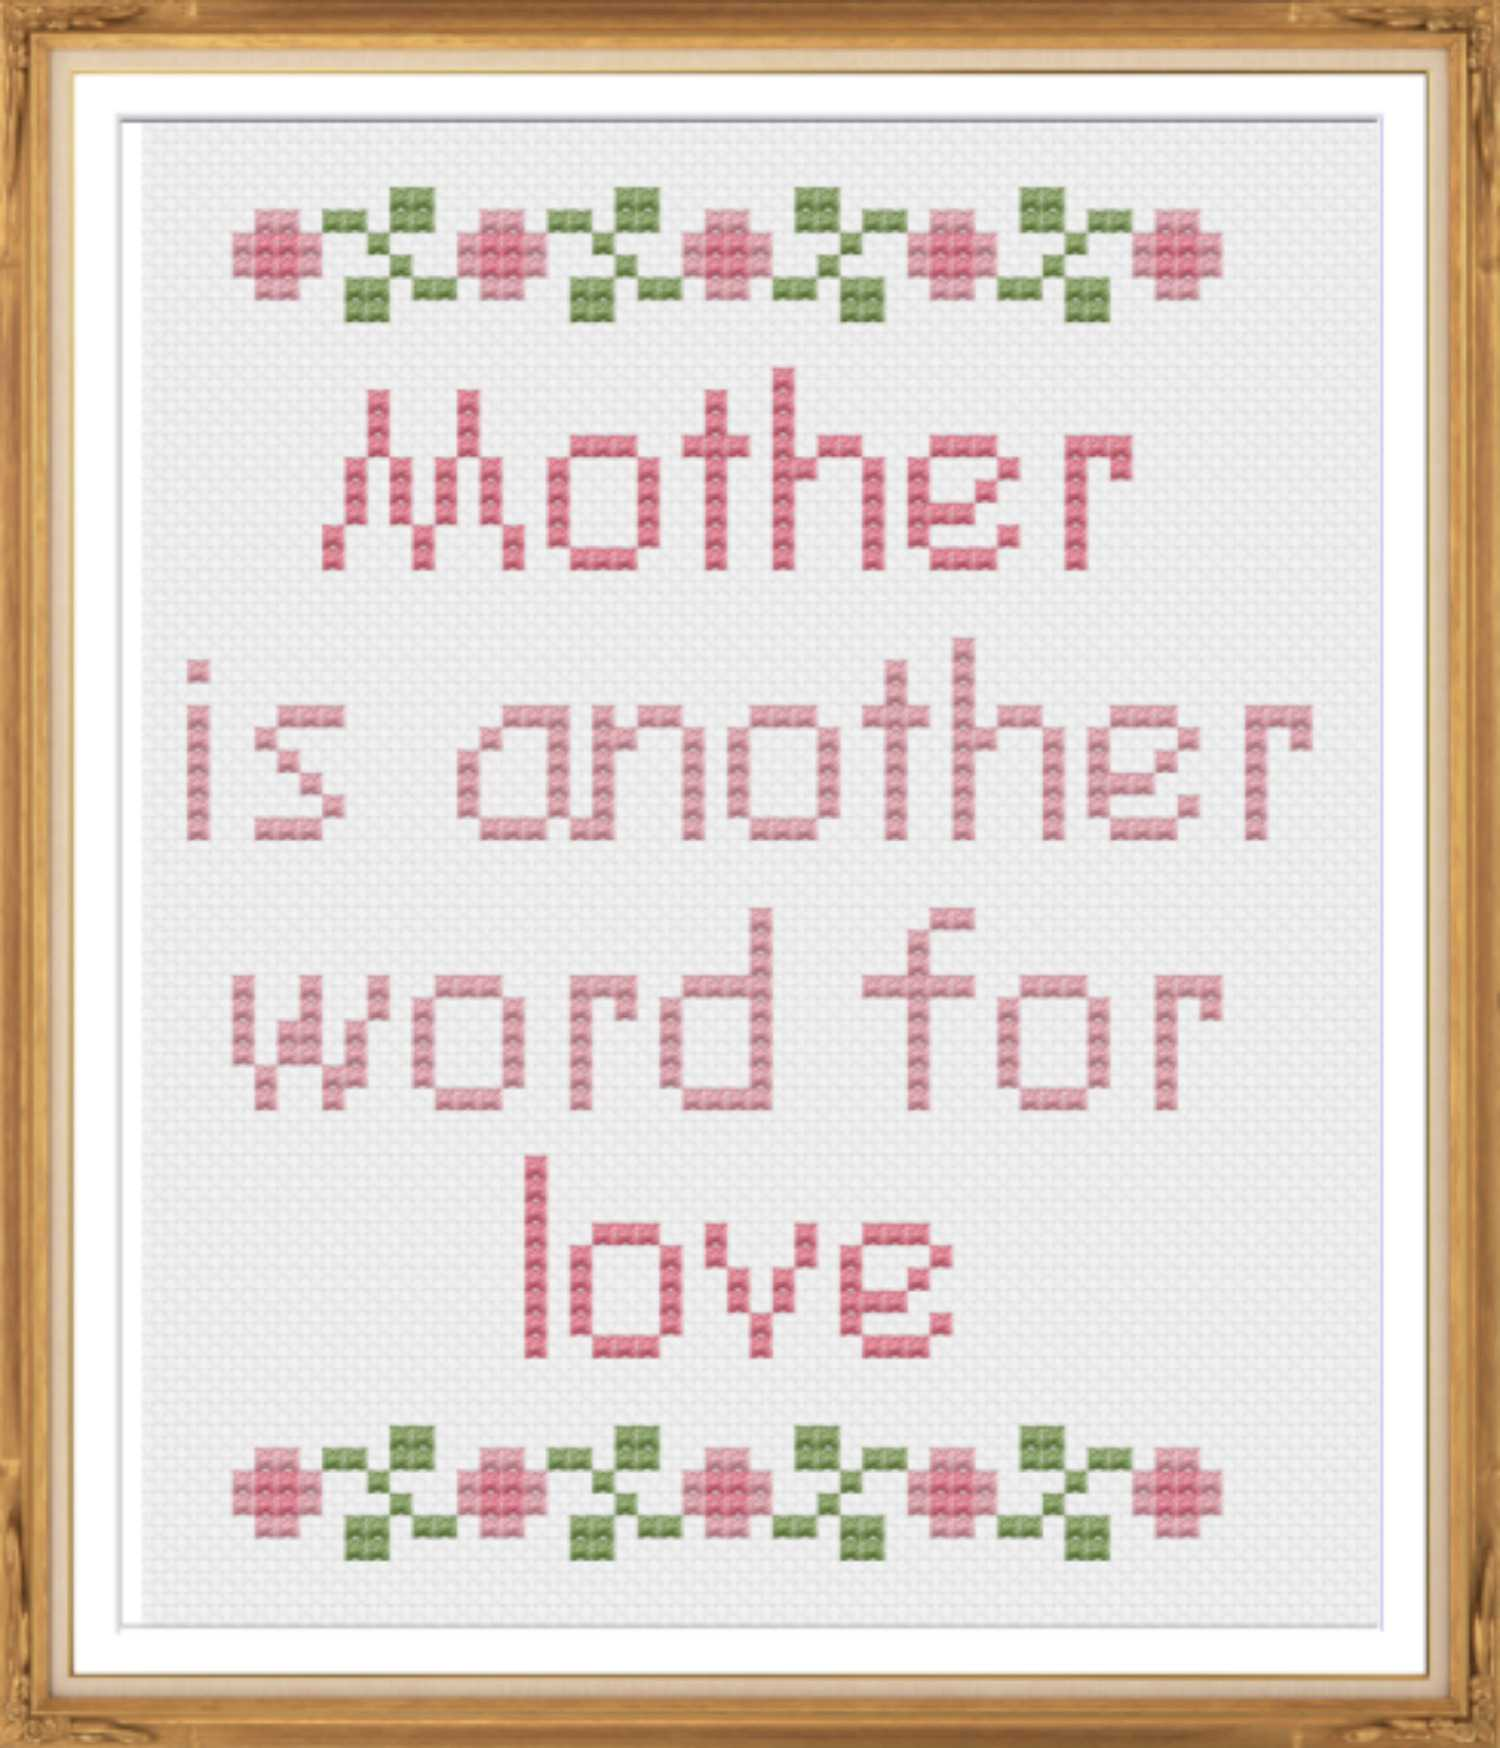 10 Cross Stitch Patterns to Celebrate Mom